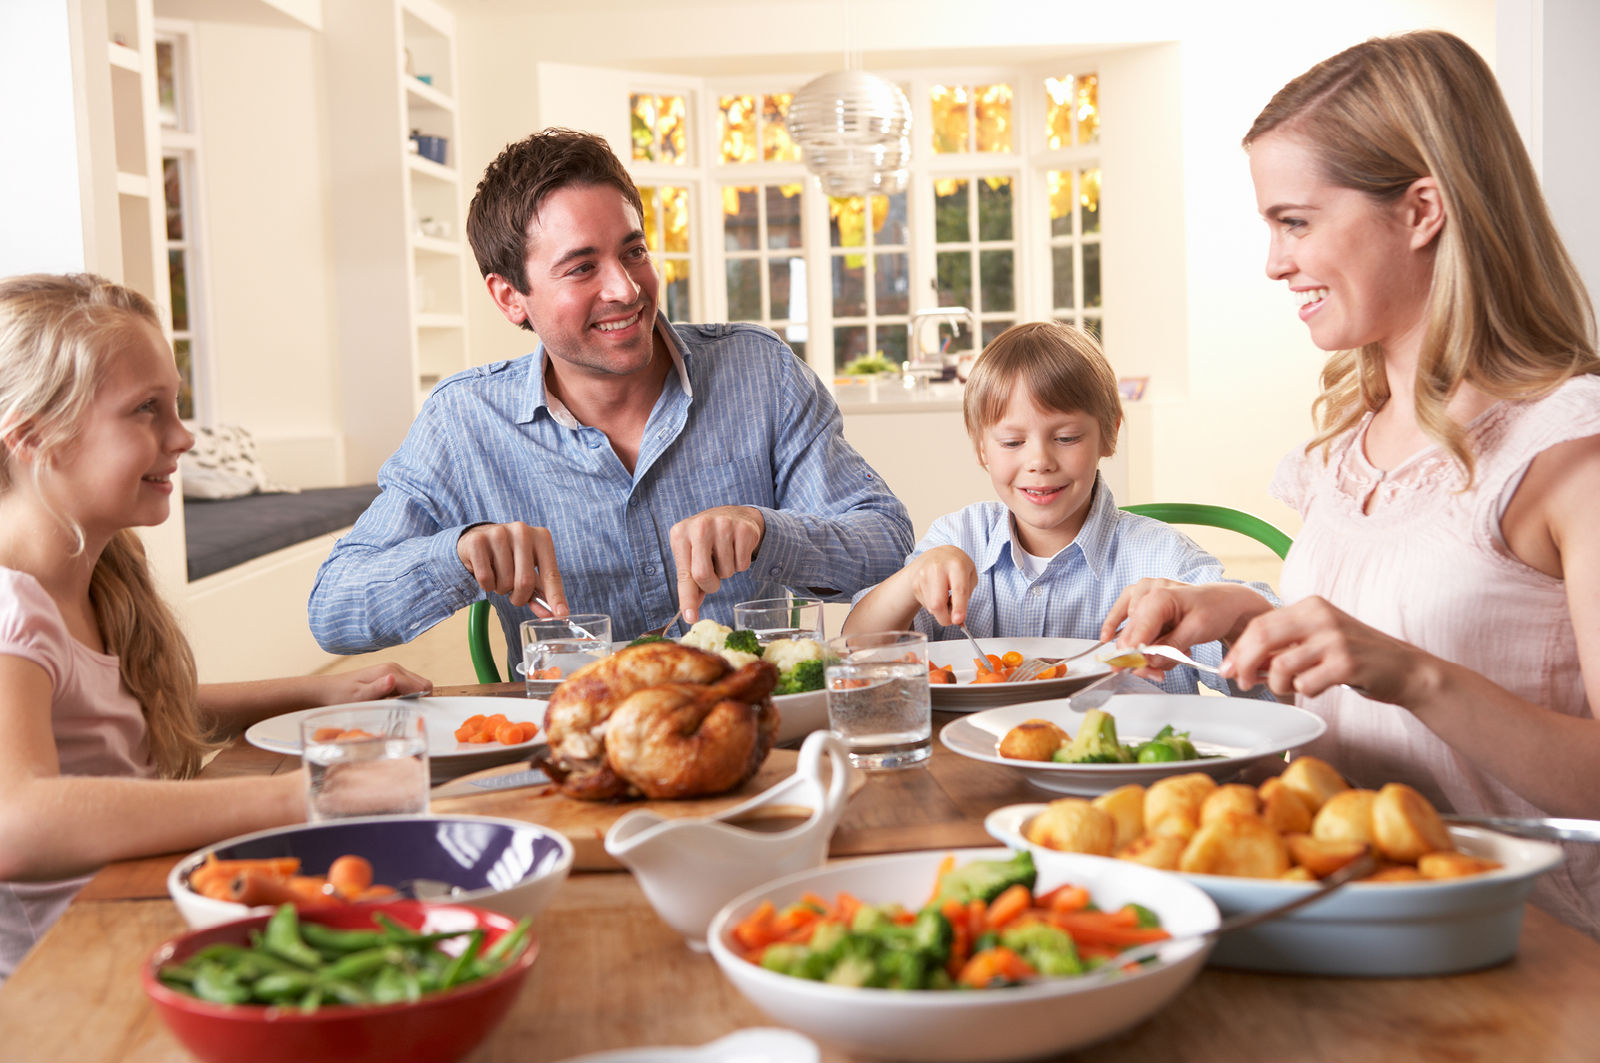 Five Lasting Benefits Of Family Mealtimes: Make Quality Time Count